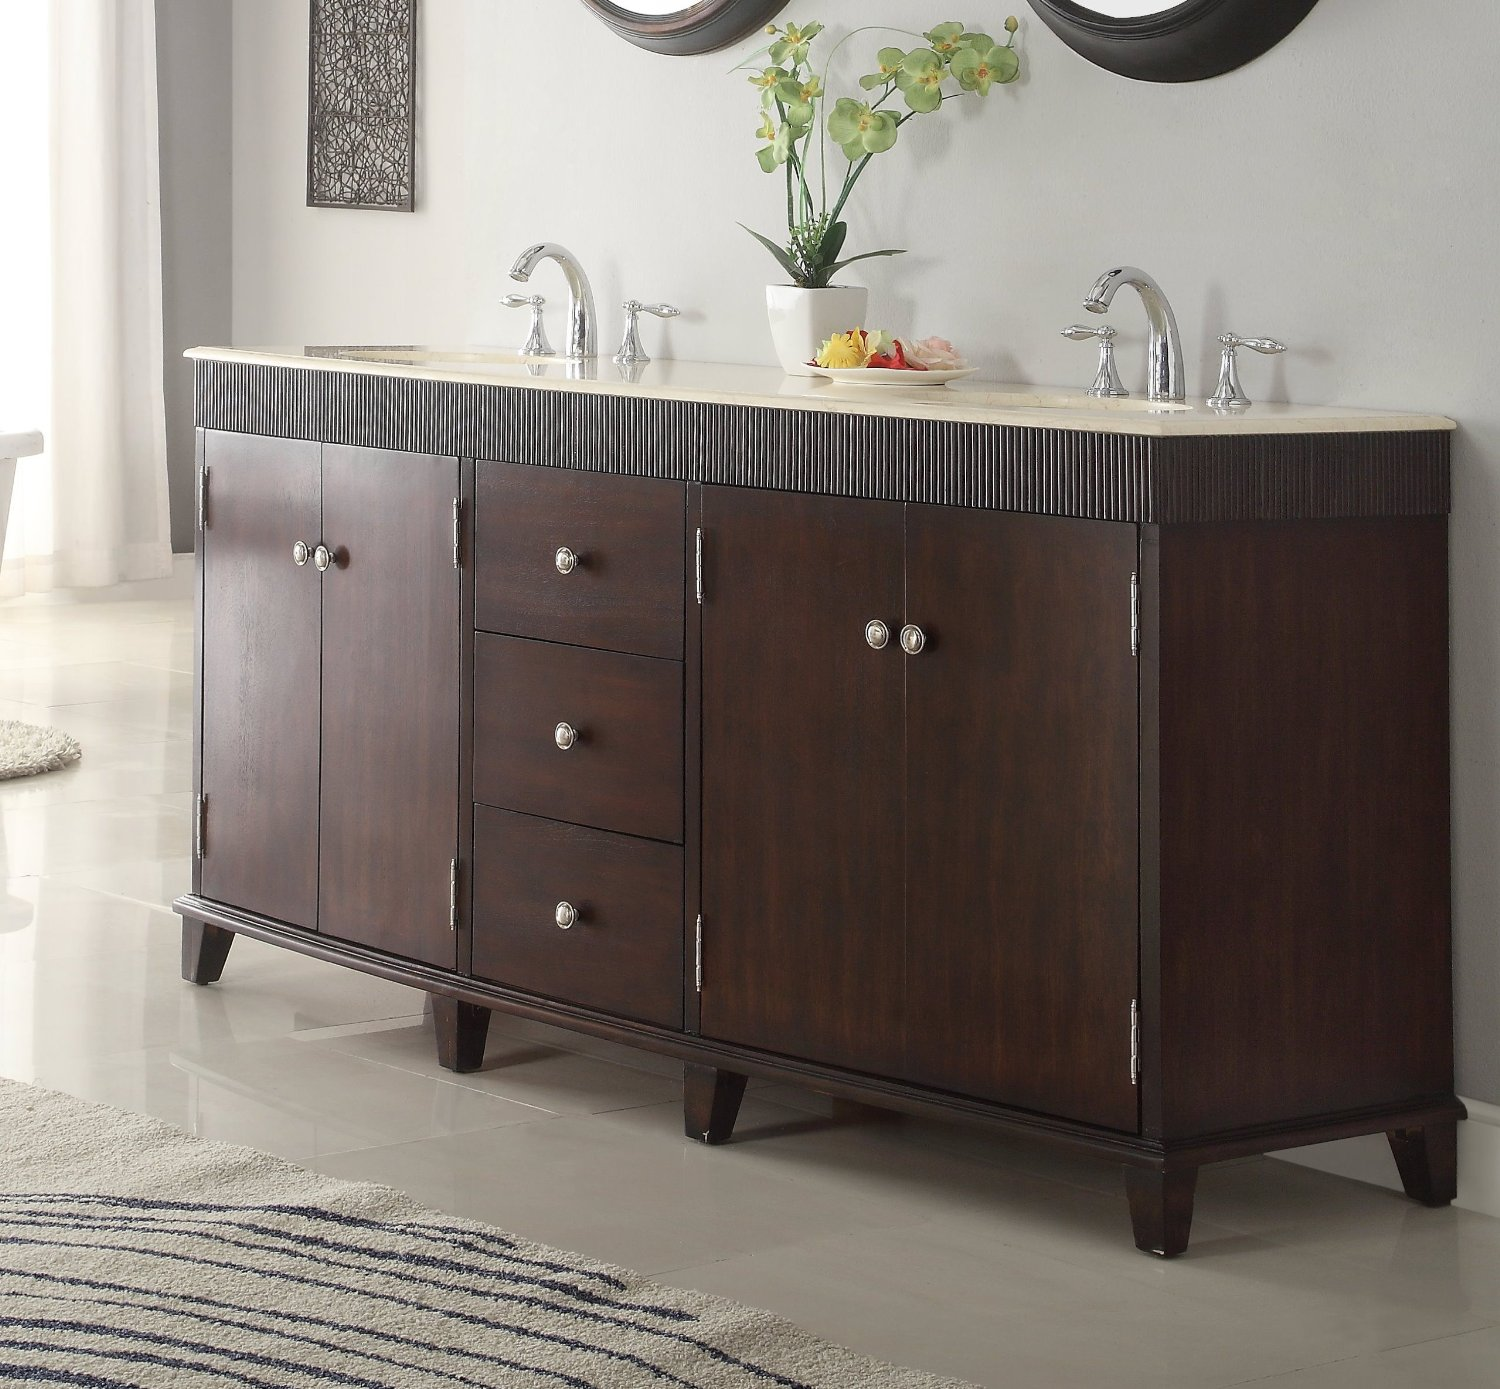 Adelina 72 Inch Double Sink Bathroom Vanity Cream Marble Top ...